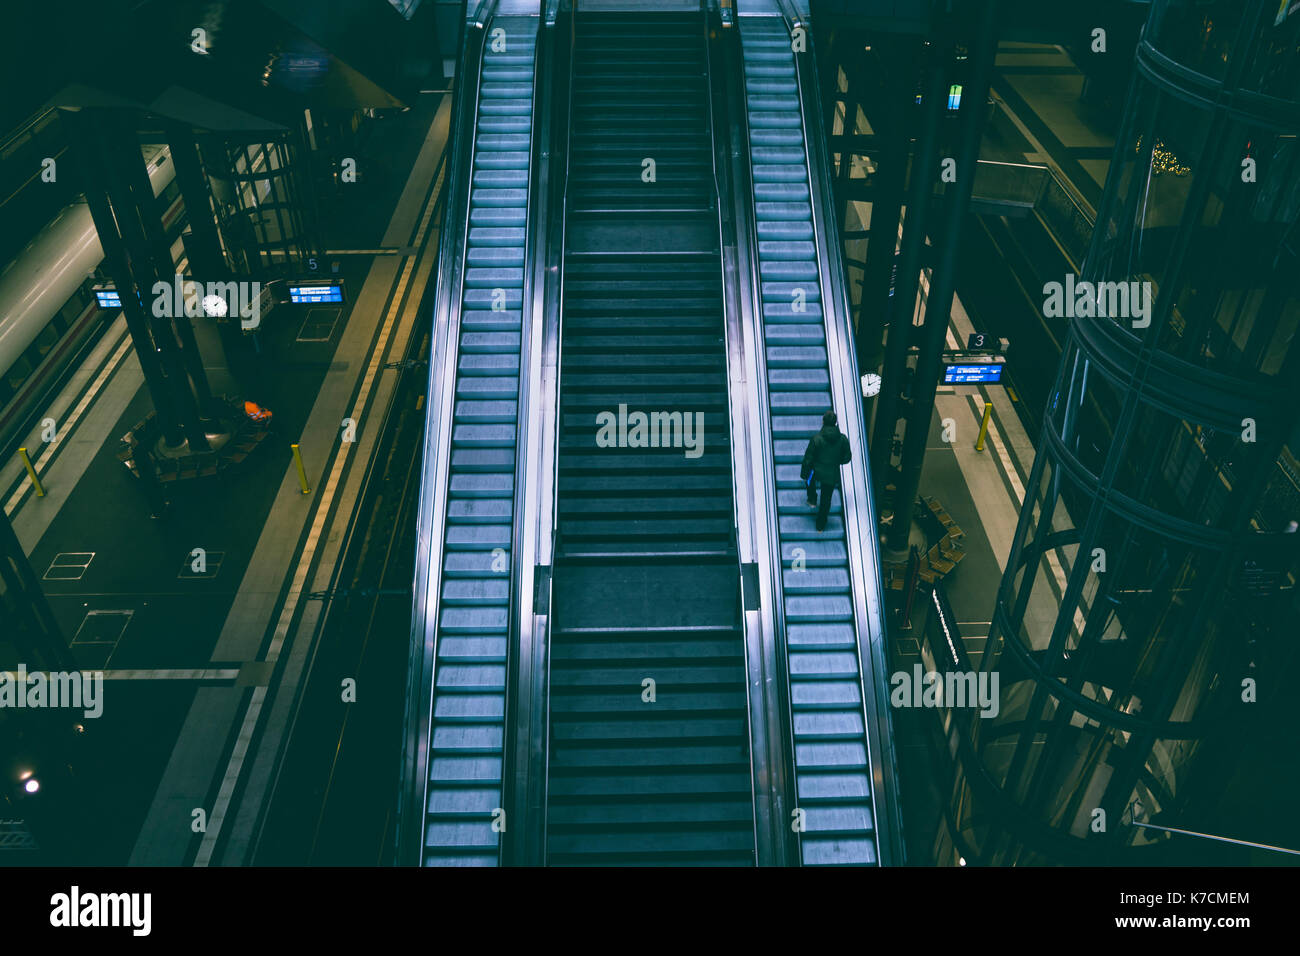 Lone traveller on escalator, central station. - Stock Image